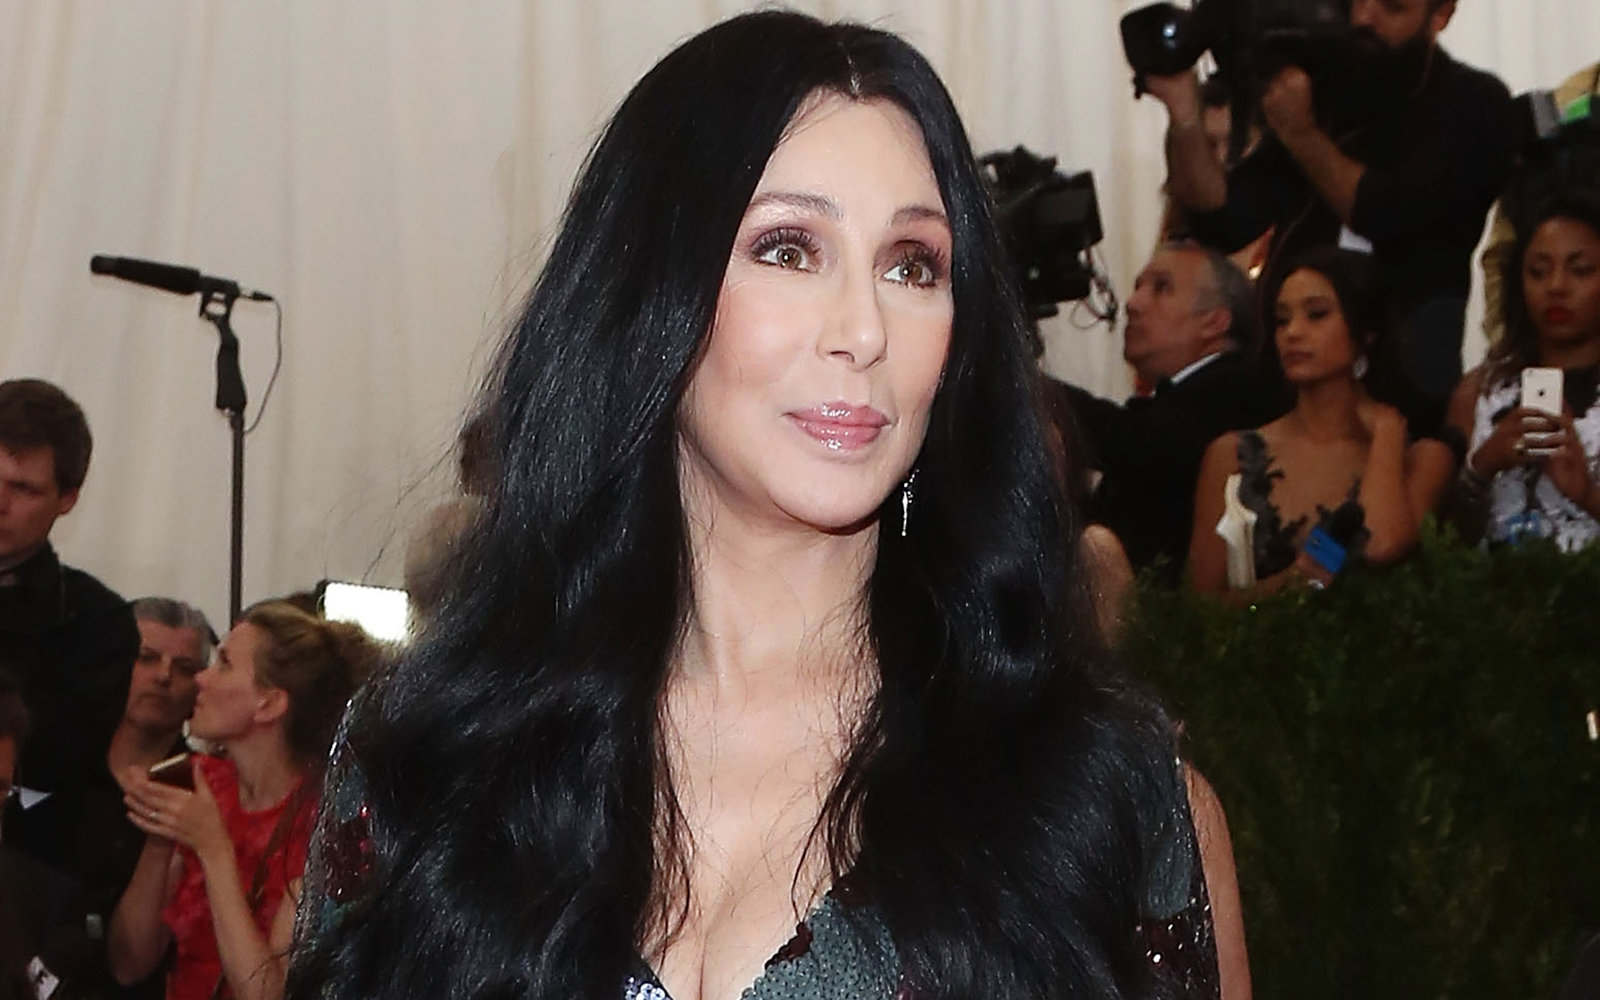 Cher and Celebrities Shocked UK Leaving EU